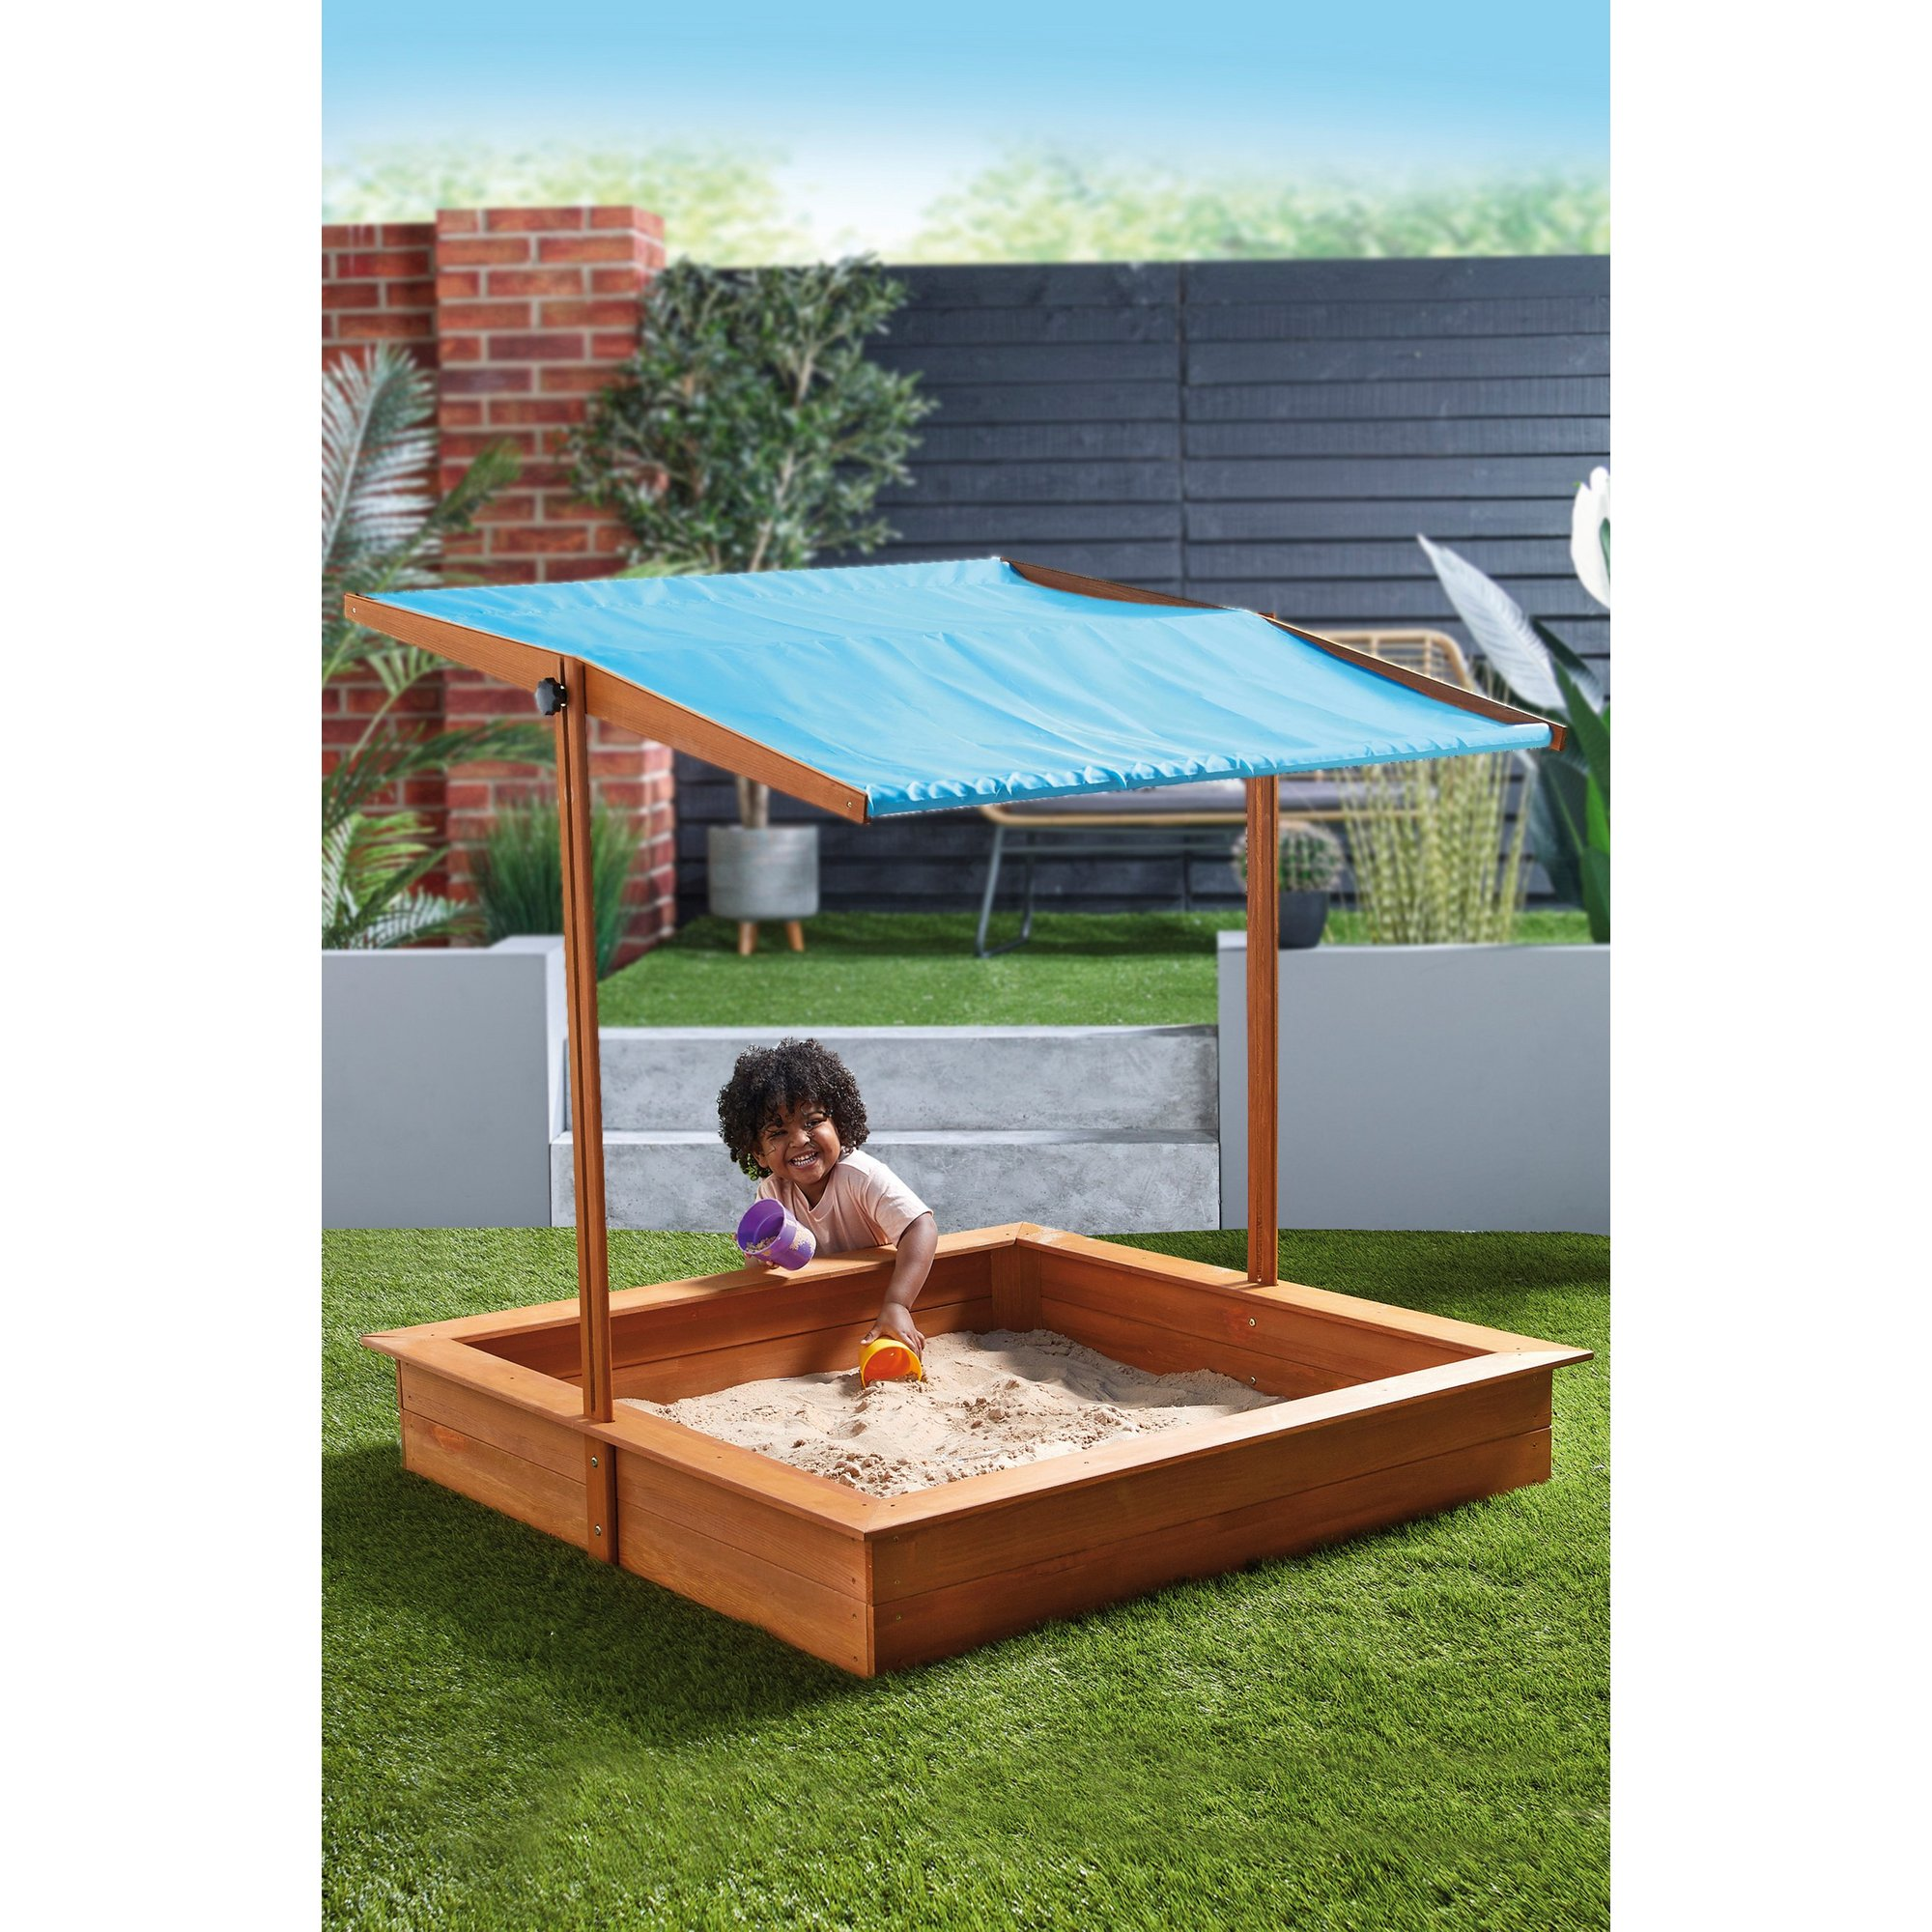 Image of Wooden Sandbox with Canopy Roof